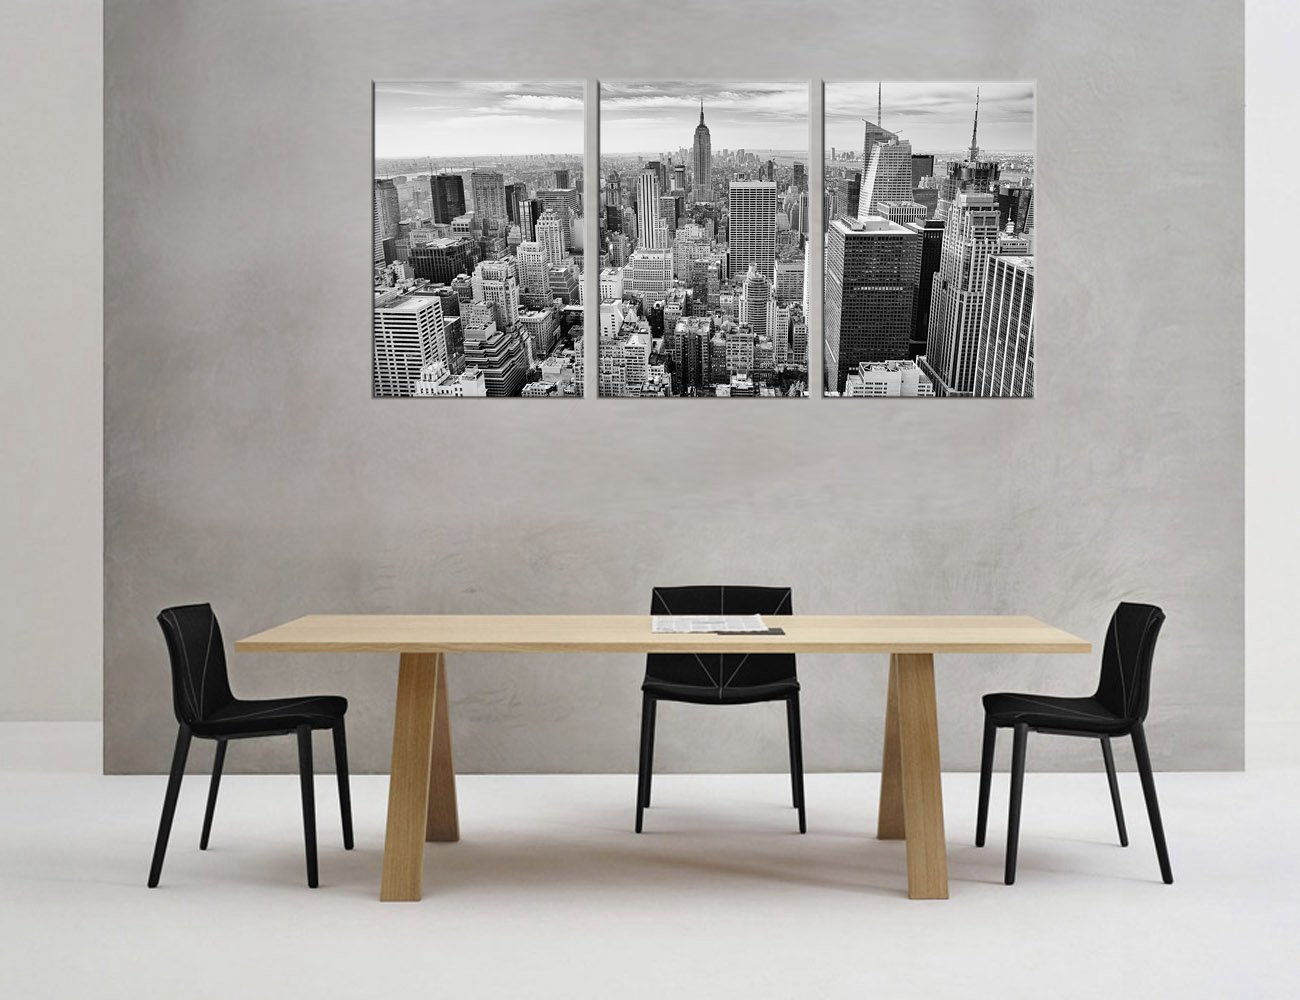 US $13 32 26% OFF|Wall Art Black and White Canvas Painting Wall Decor  Empire State Building New York City Skyline Contemporary Picture Home  Decor-in